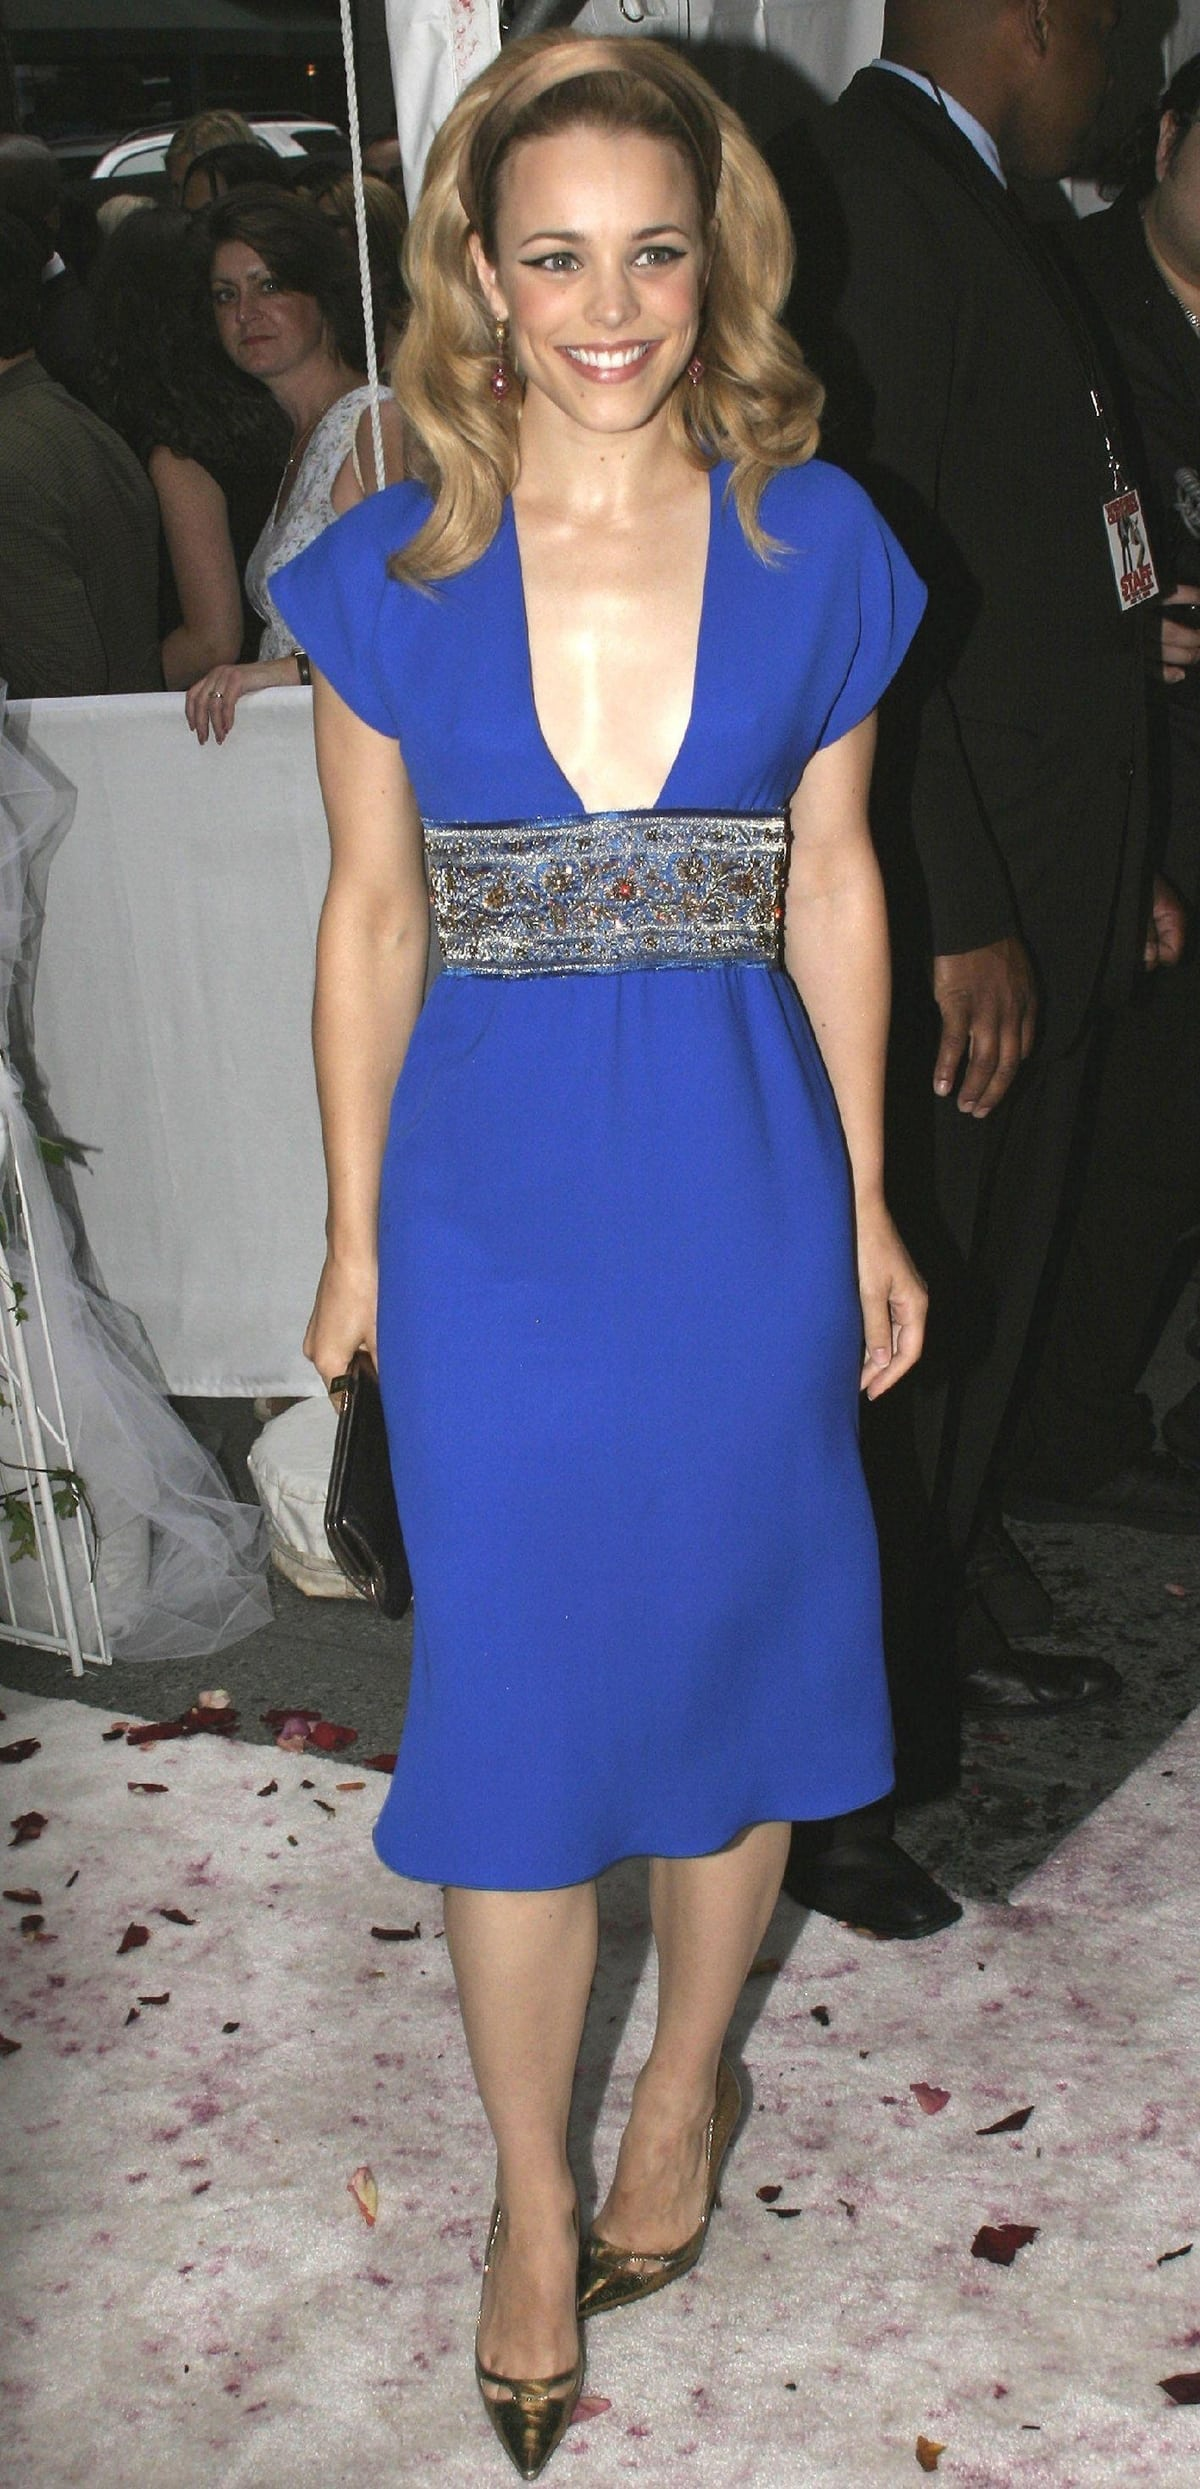 Rachel McAdams in a blue dress at the New York premiere of Wedding Crashers